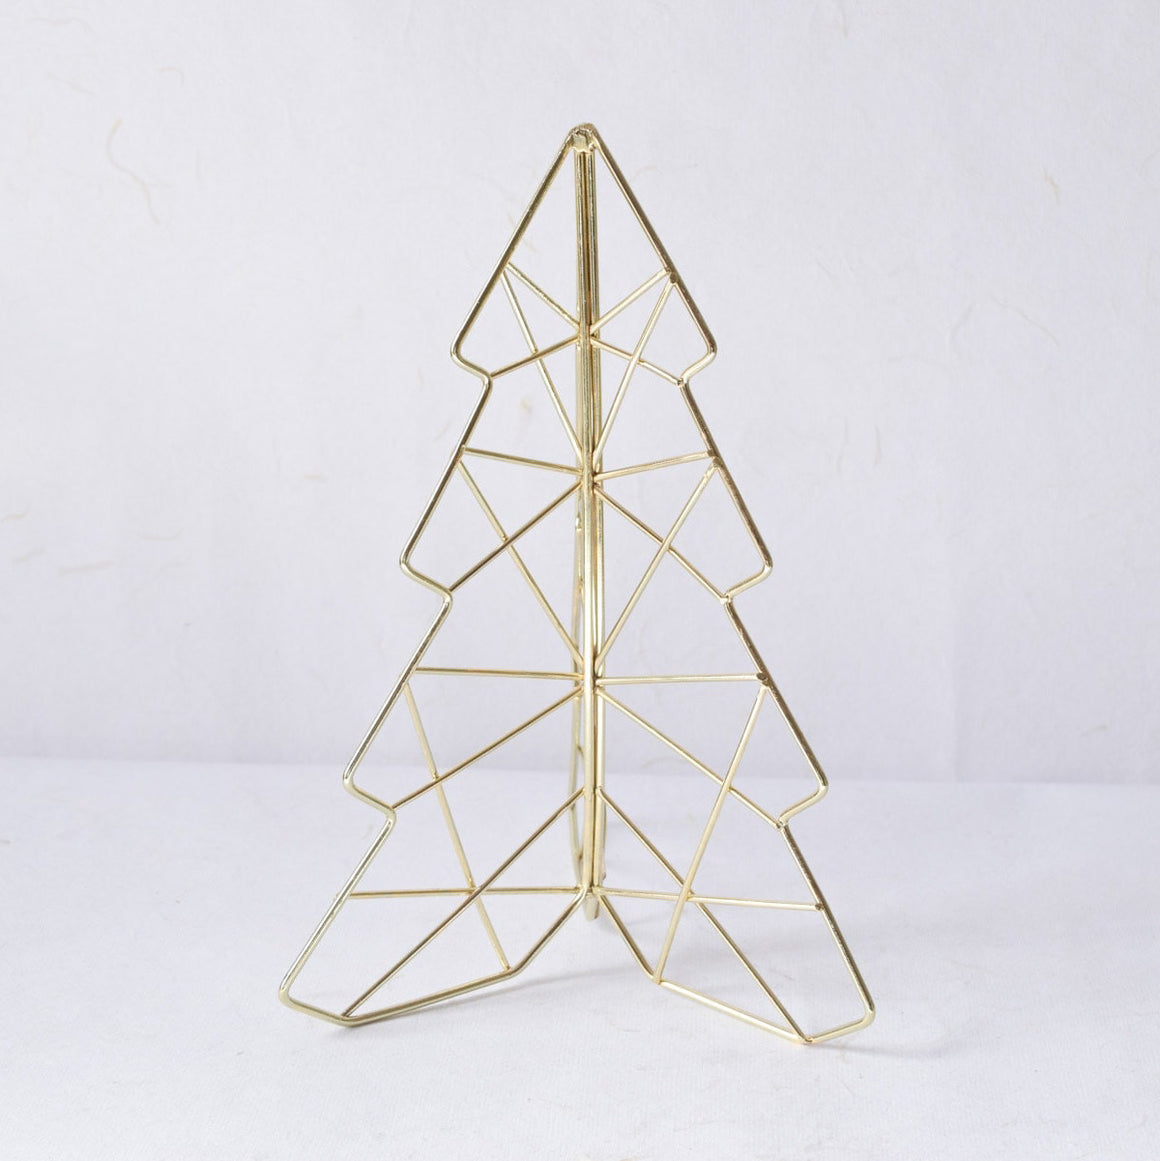 Decorative Golden Christmas Tree (Large)